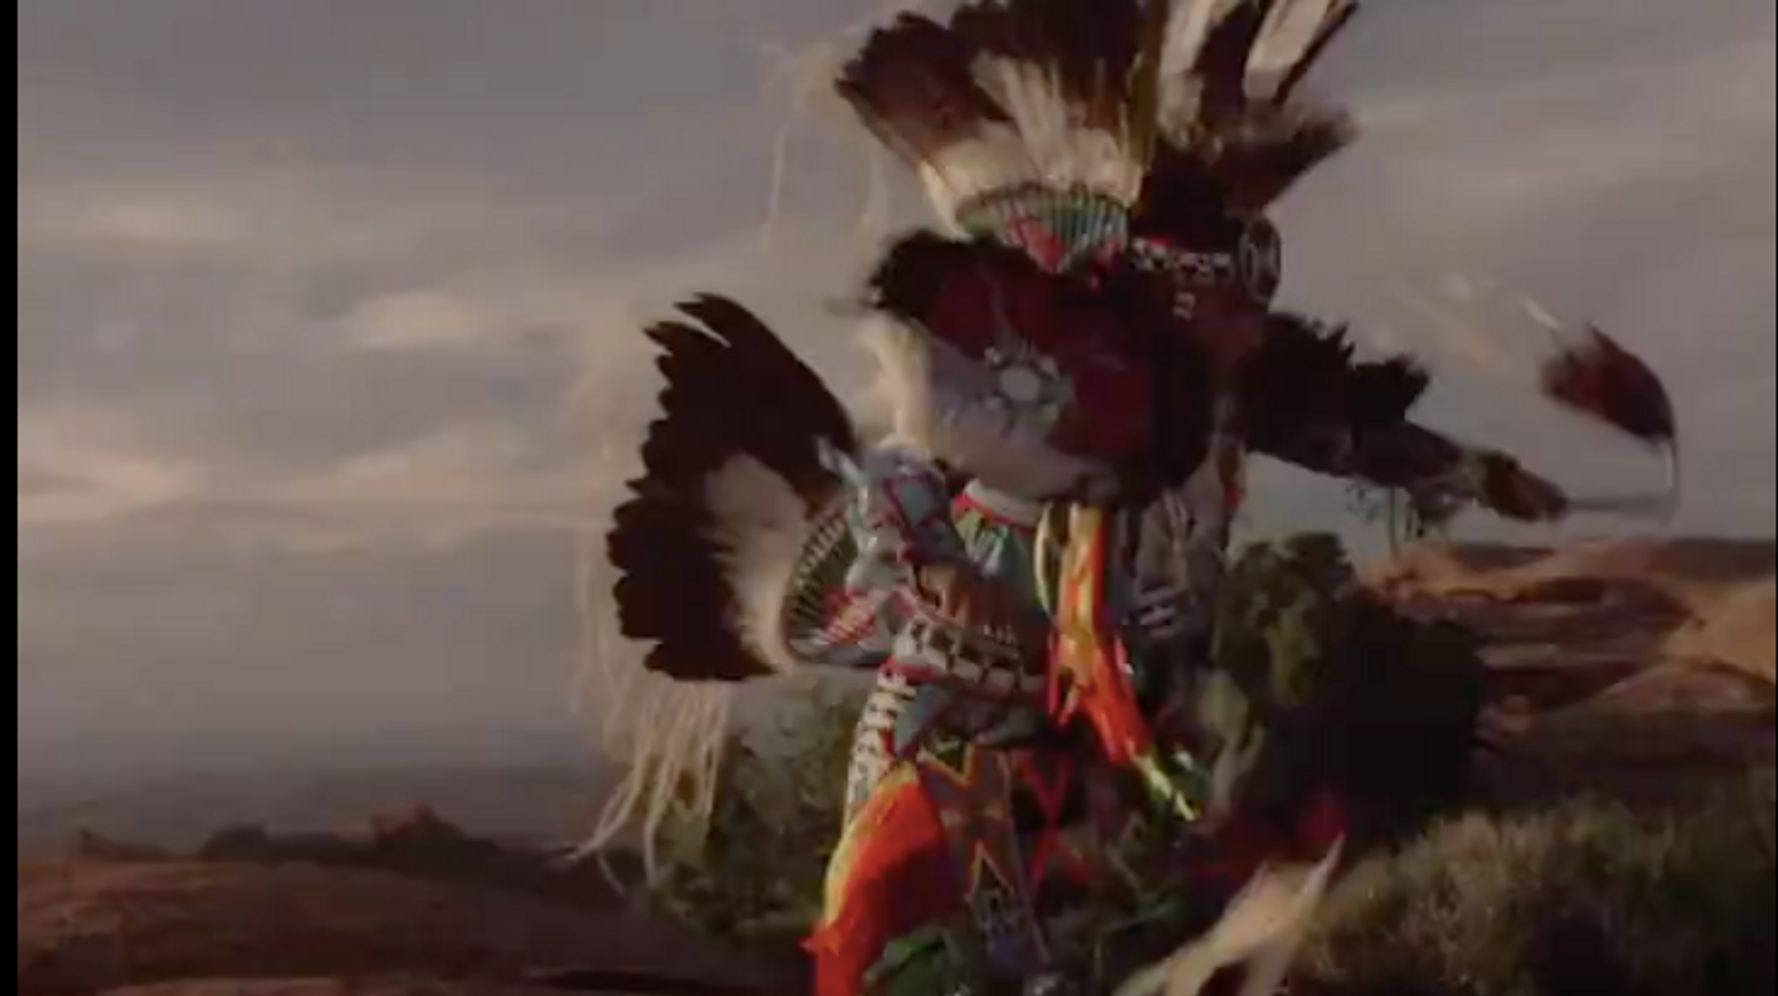 Westlake Legal Group 5d6970262500004b047525a3 Dior Faces Backlash Over Native American Imagery In 'Sauvage' Perfume Ad